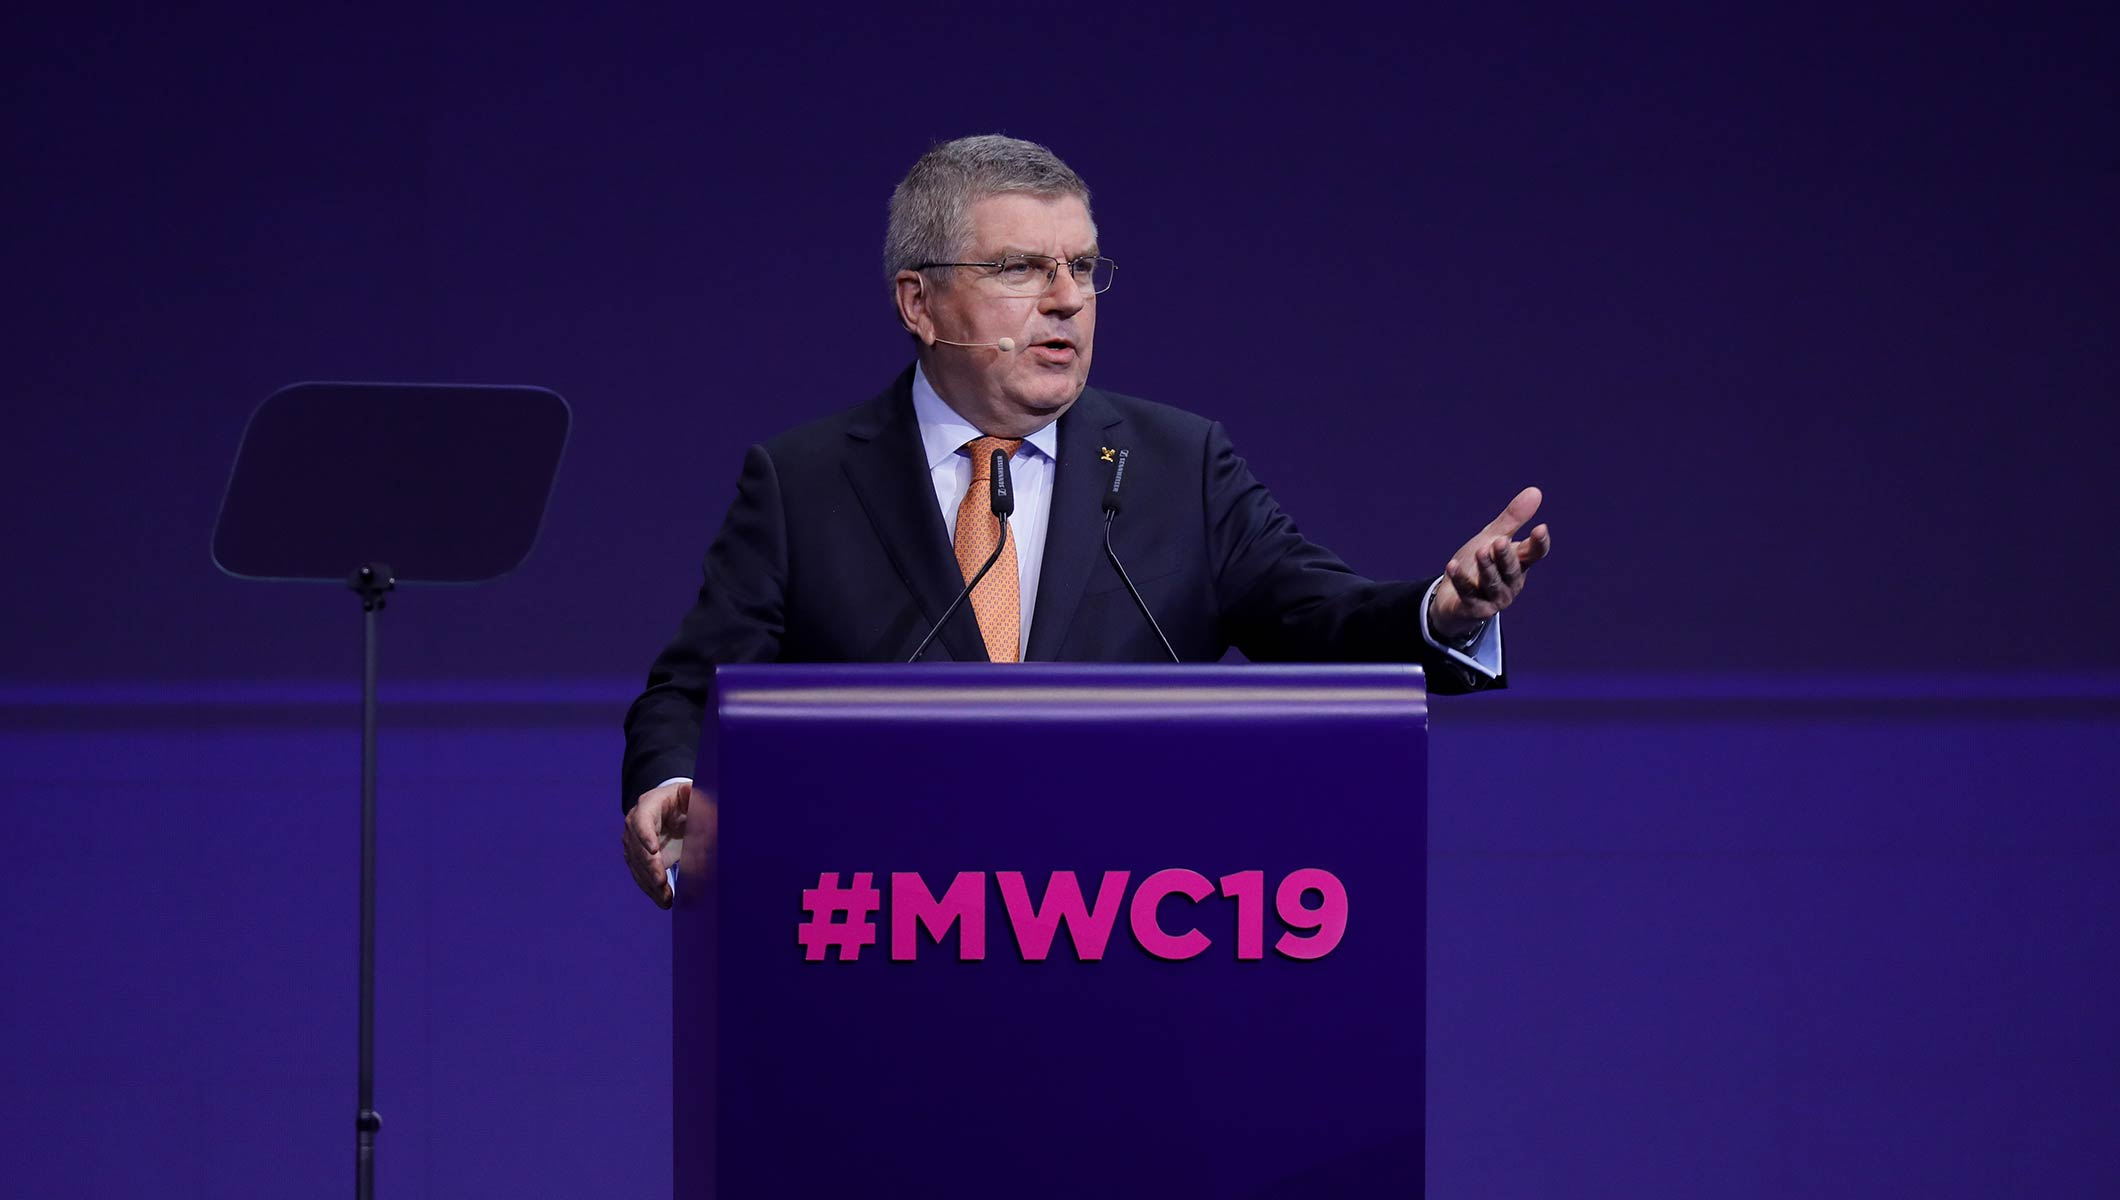 IOC President Bach outlines digital future of the Olympic Games